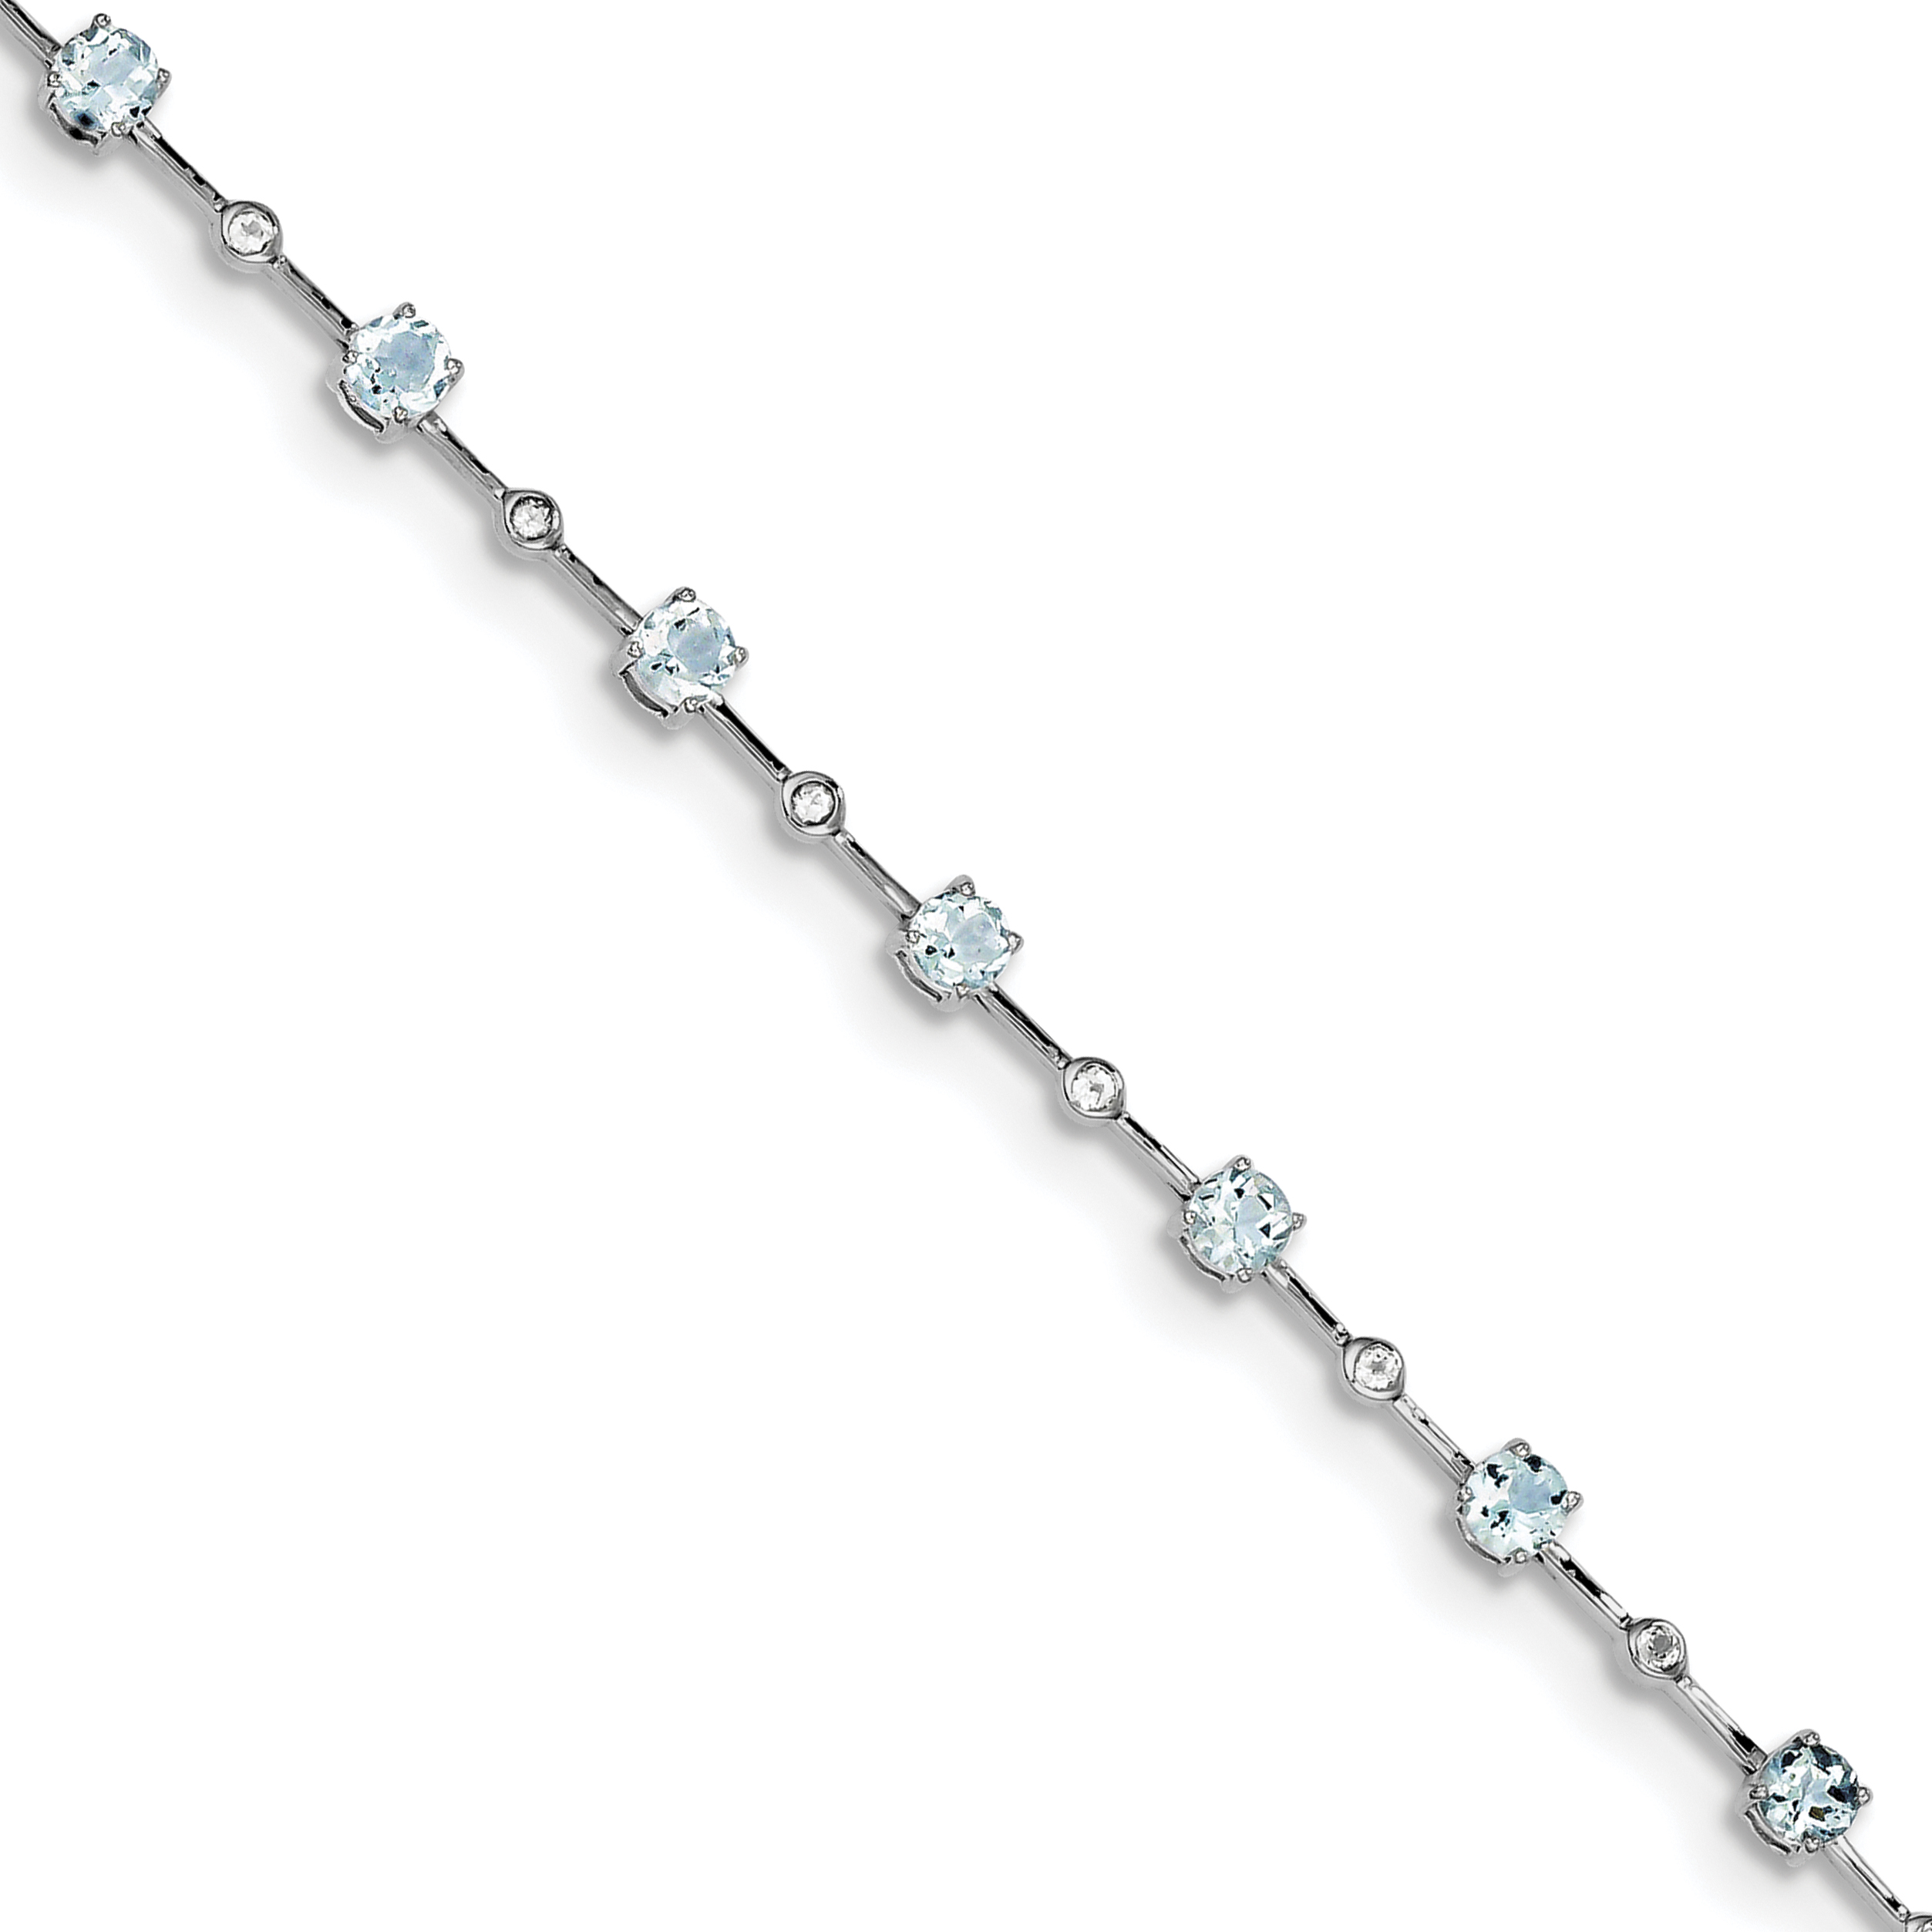 925 Sterling Silver 3.5mm Link Figaro Chain Anklet Ankle Beach Bracelet 9 Inch